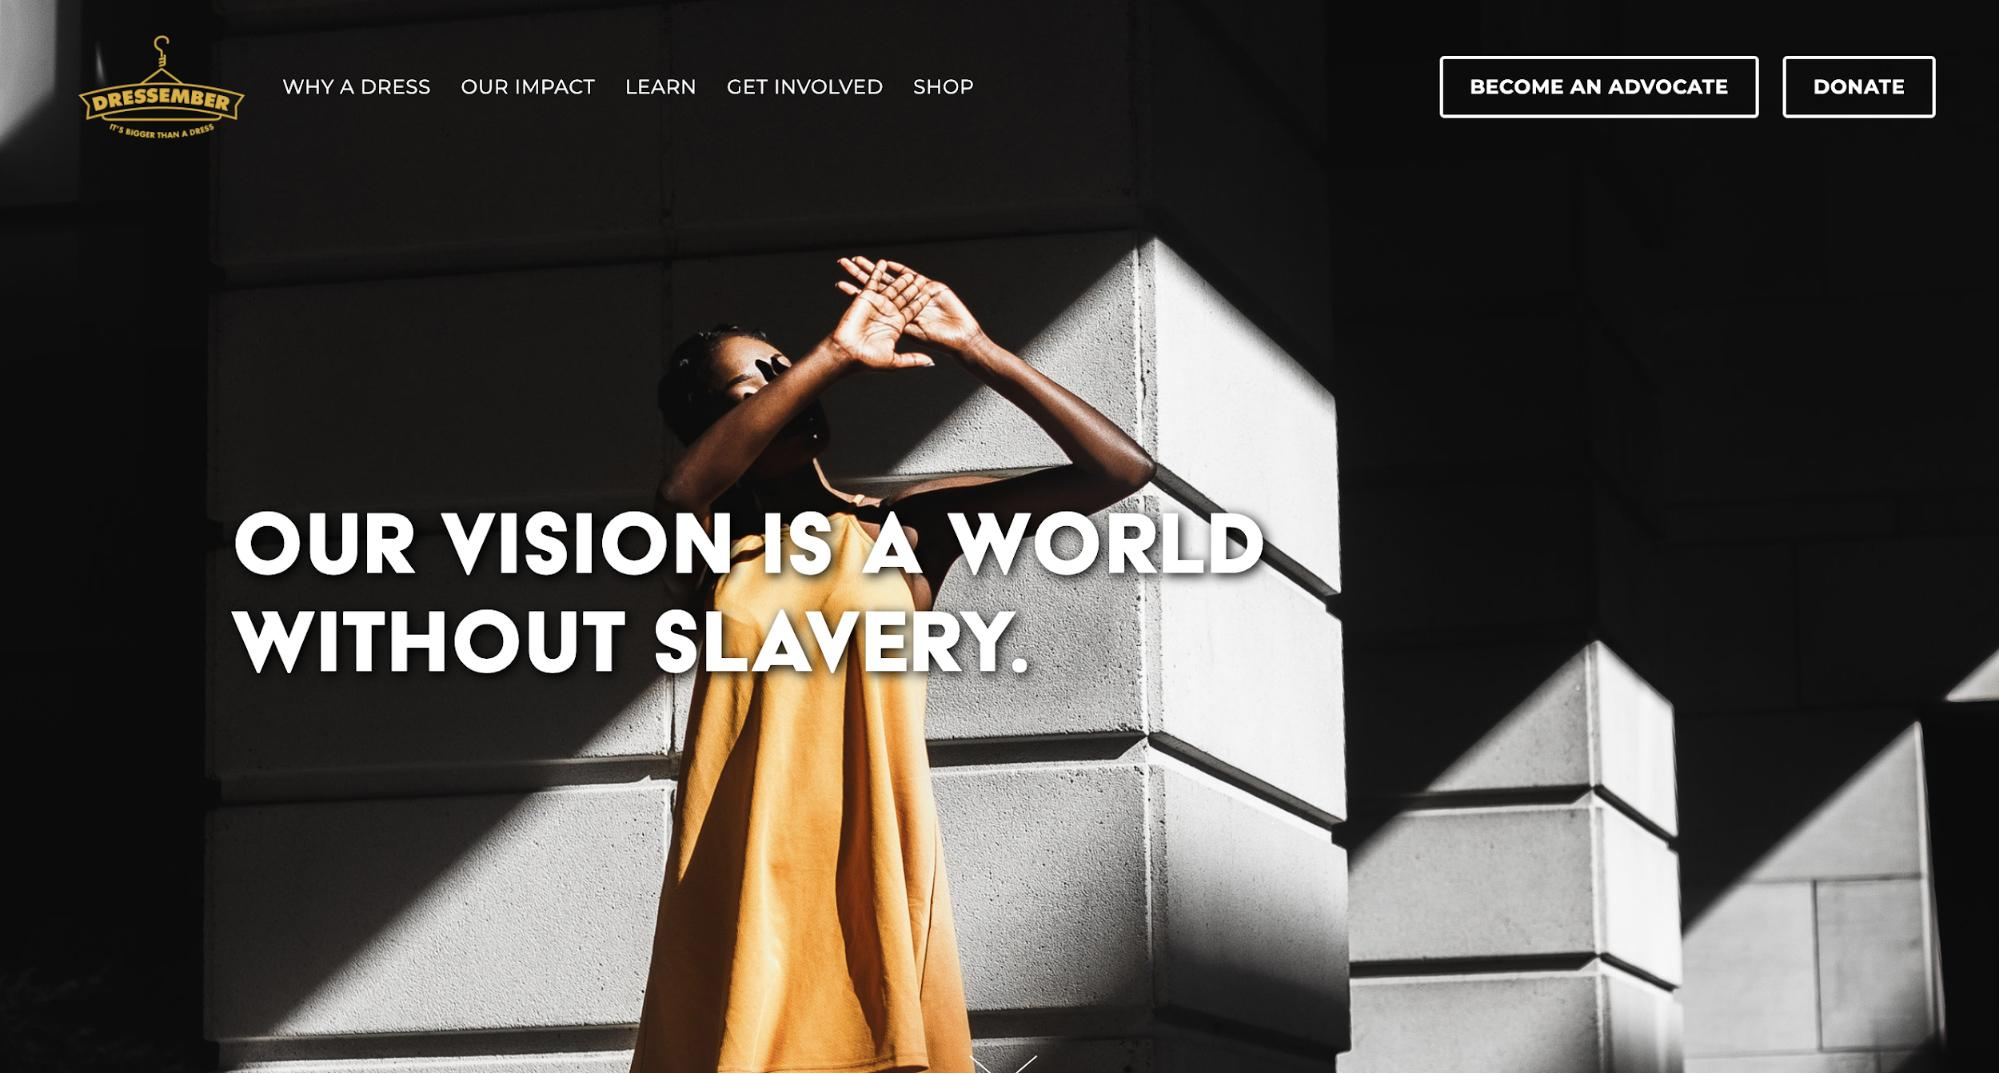 Homepage design principles: images of people appeal to visitor emotions